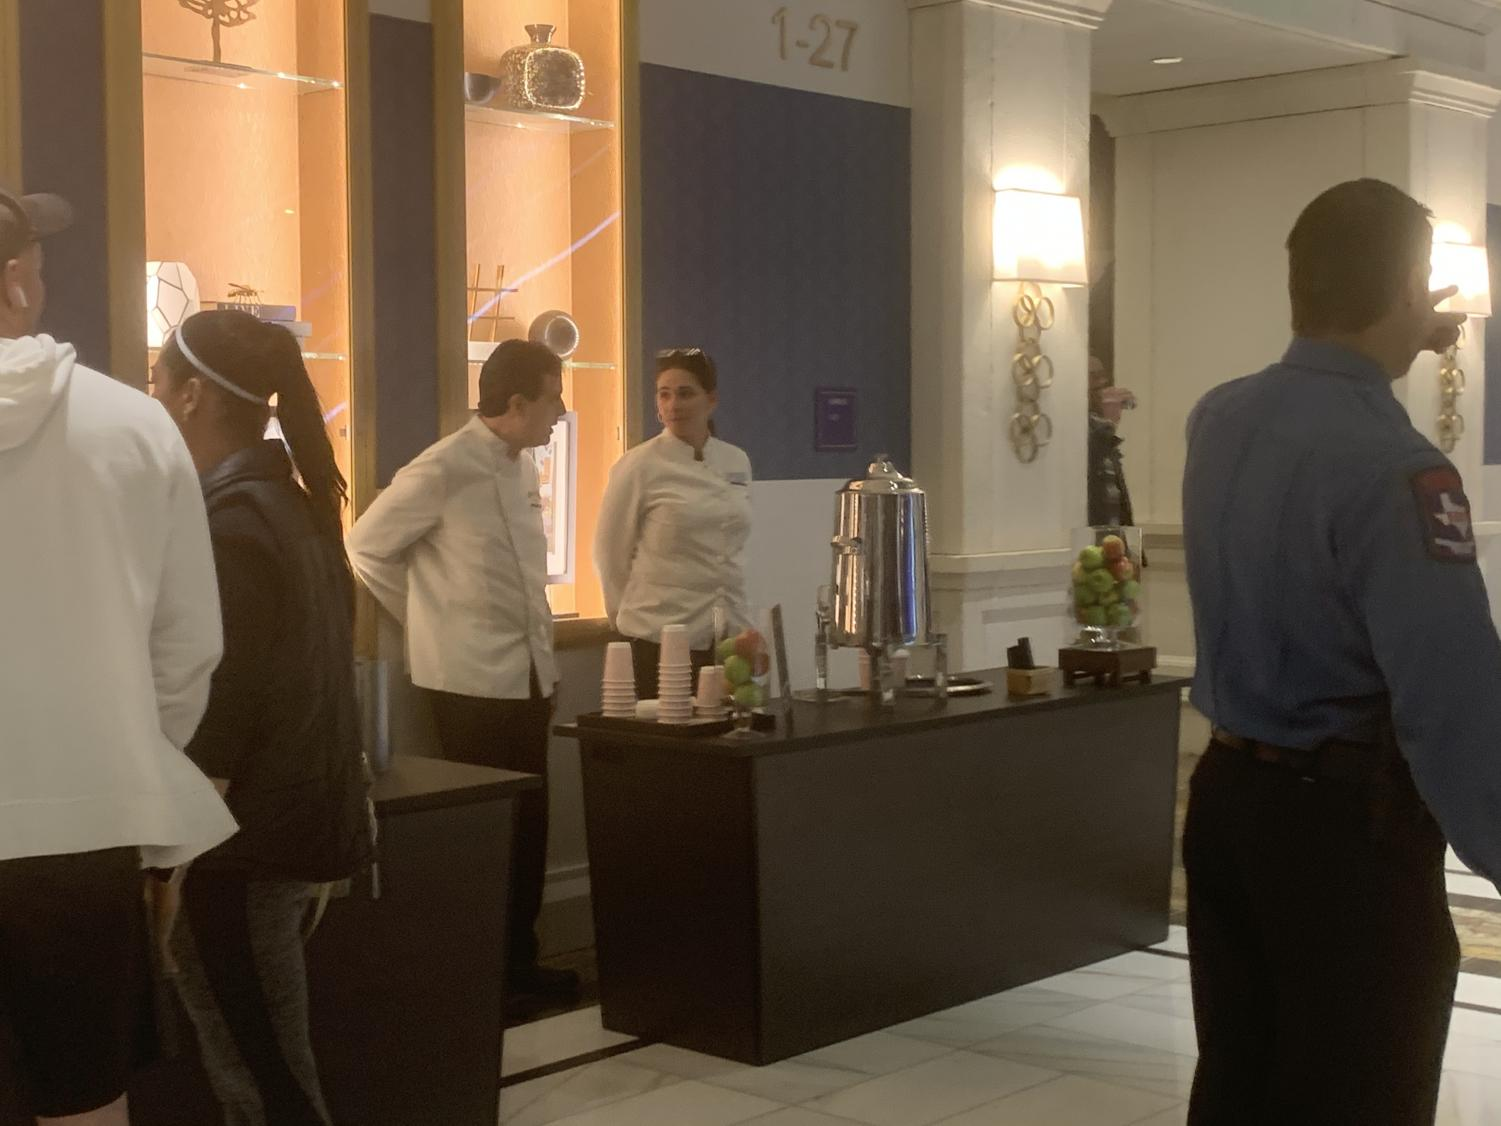 To+complement+the+desserts%2C+customers+were+offered+the+chance+to+get+a+drink+of+Hot+Chocolate+or+Hot+Apple+Cider.++The+drinks+were+free+and+hotel+staff+helped+serve+it.